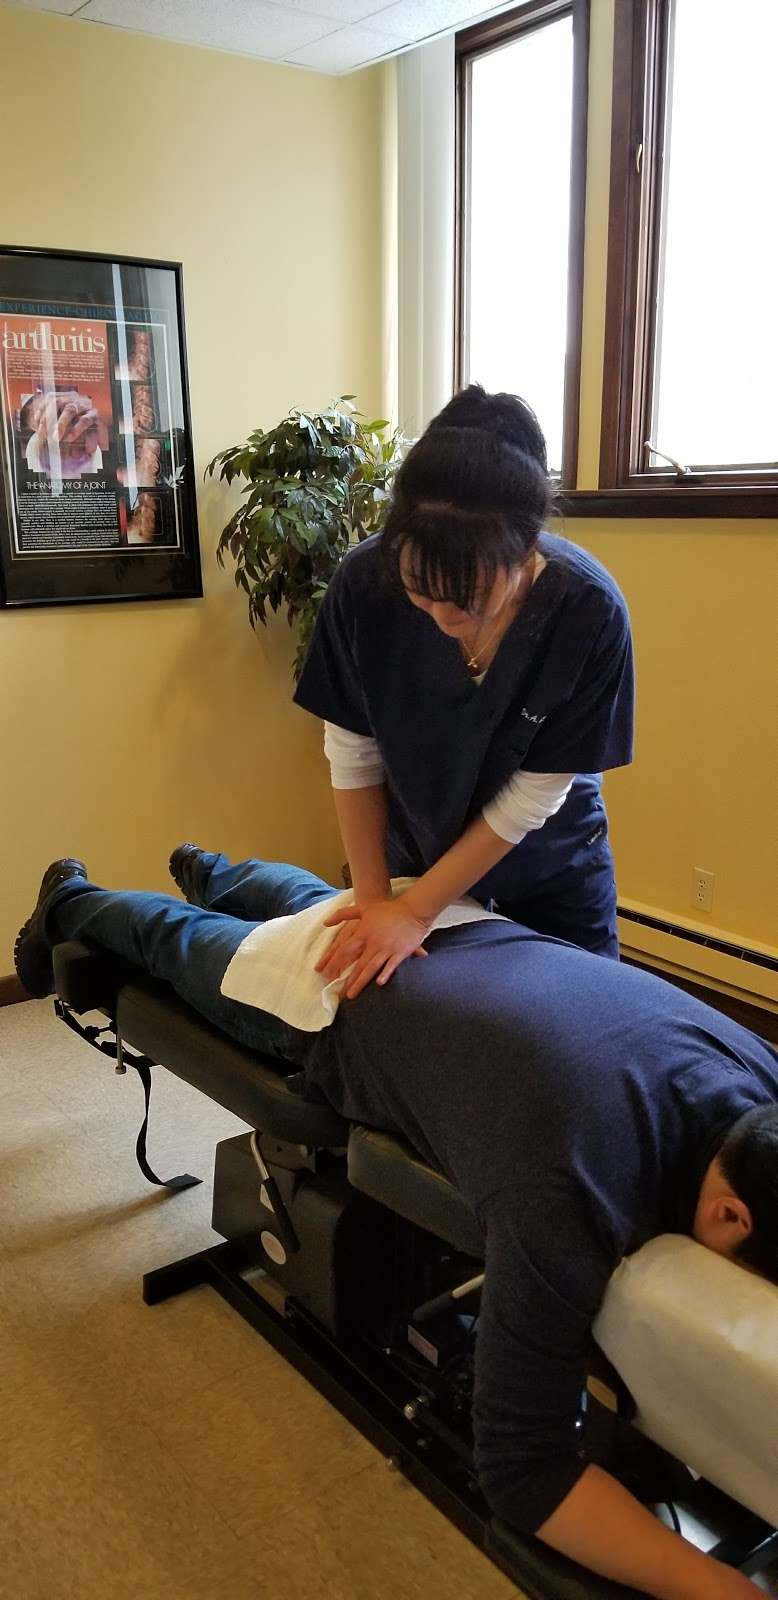 Annalee Chiropractic Care - doctor  | Photo 4 of 10 | Address: 920 Main St 2nd floor, Hackensack, NJ 07601, USA | Phone: (201) 530-0060